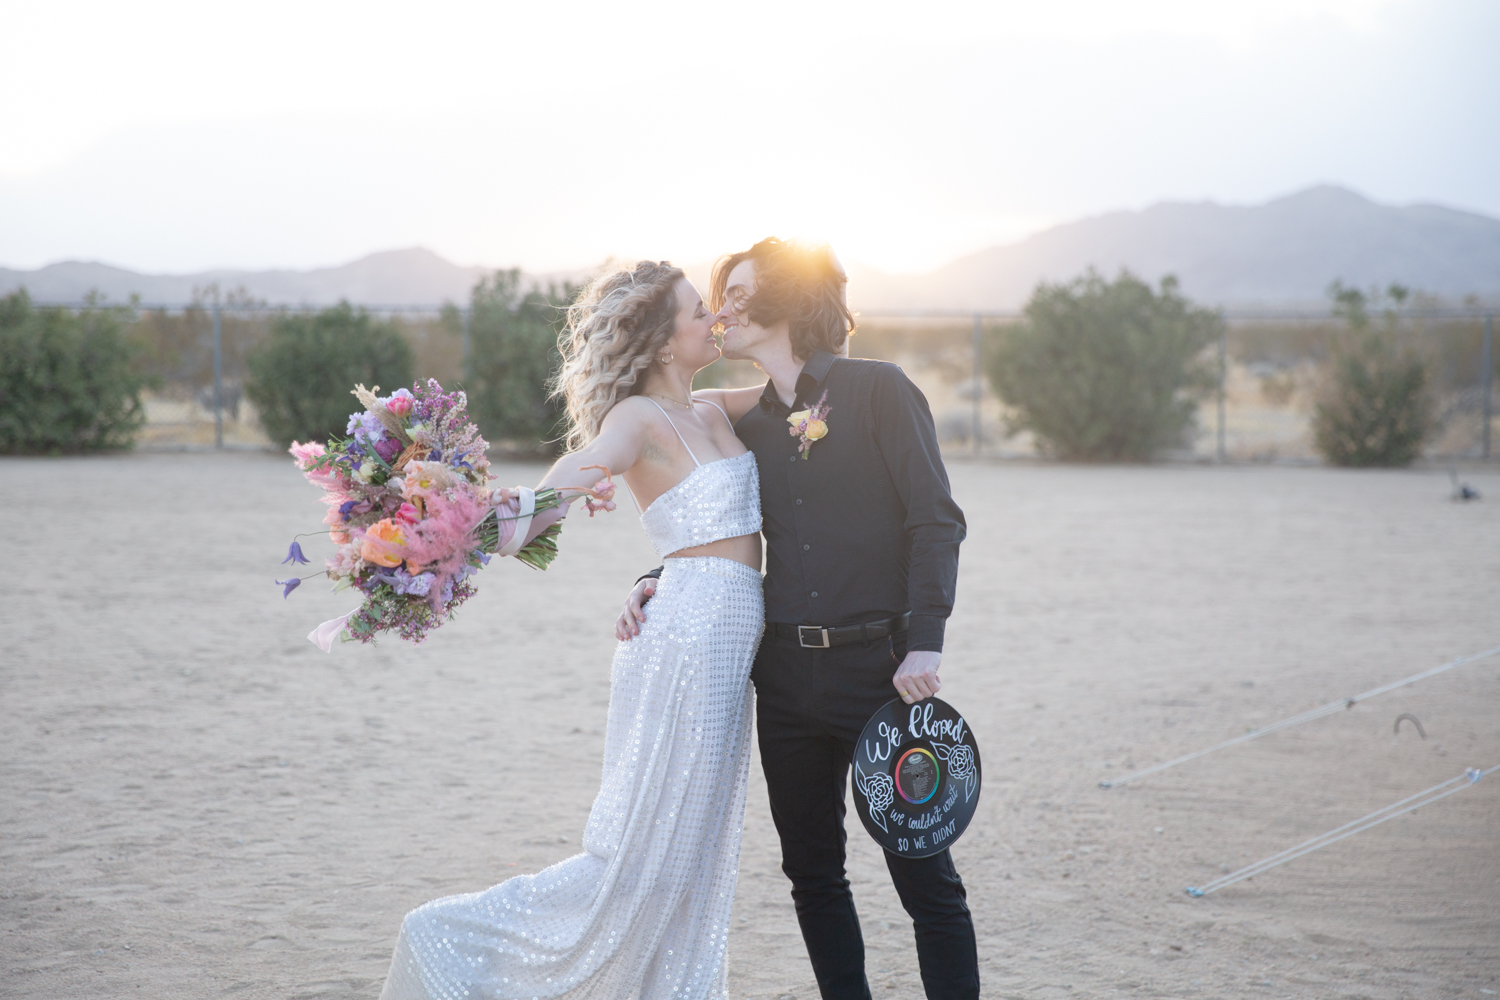 An unedited photo of a wedding couple that kisses each other, and the bride throws her bridal bouquet around.